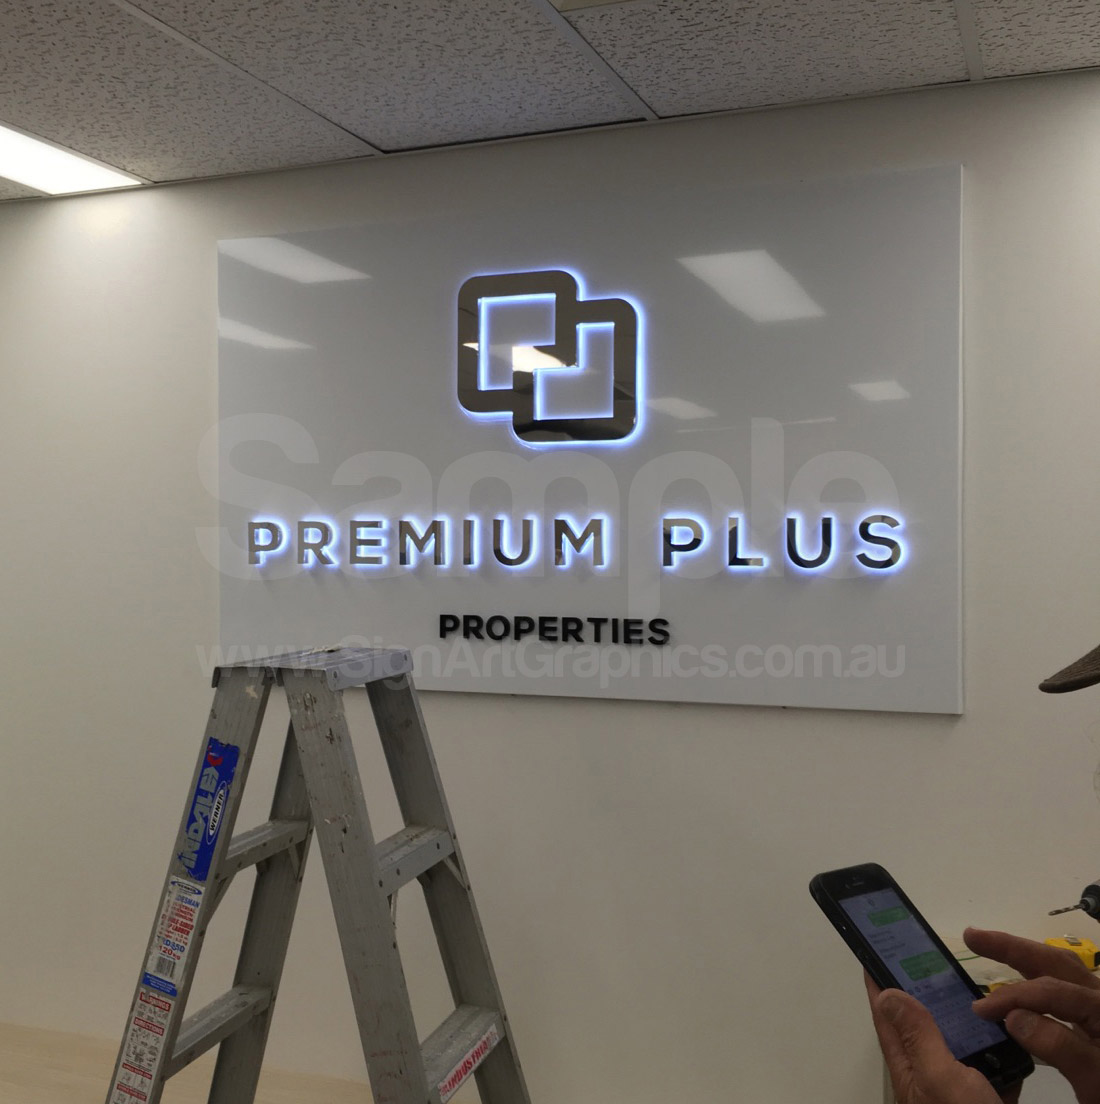 Backlit-stainless-steel-letters-Mirror